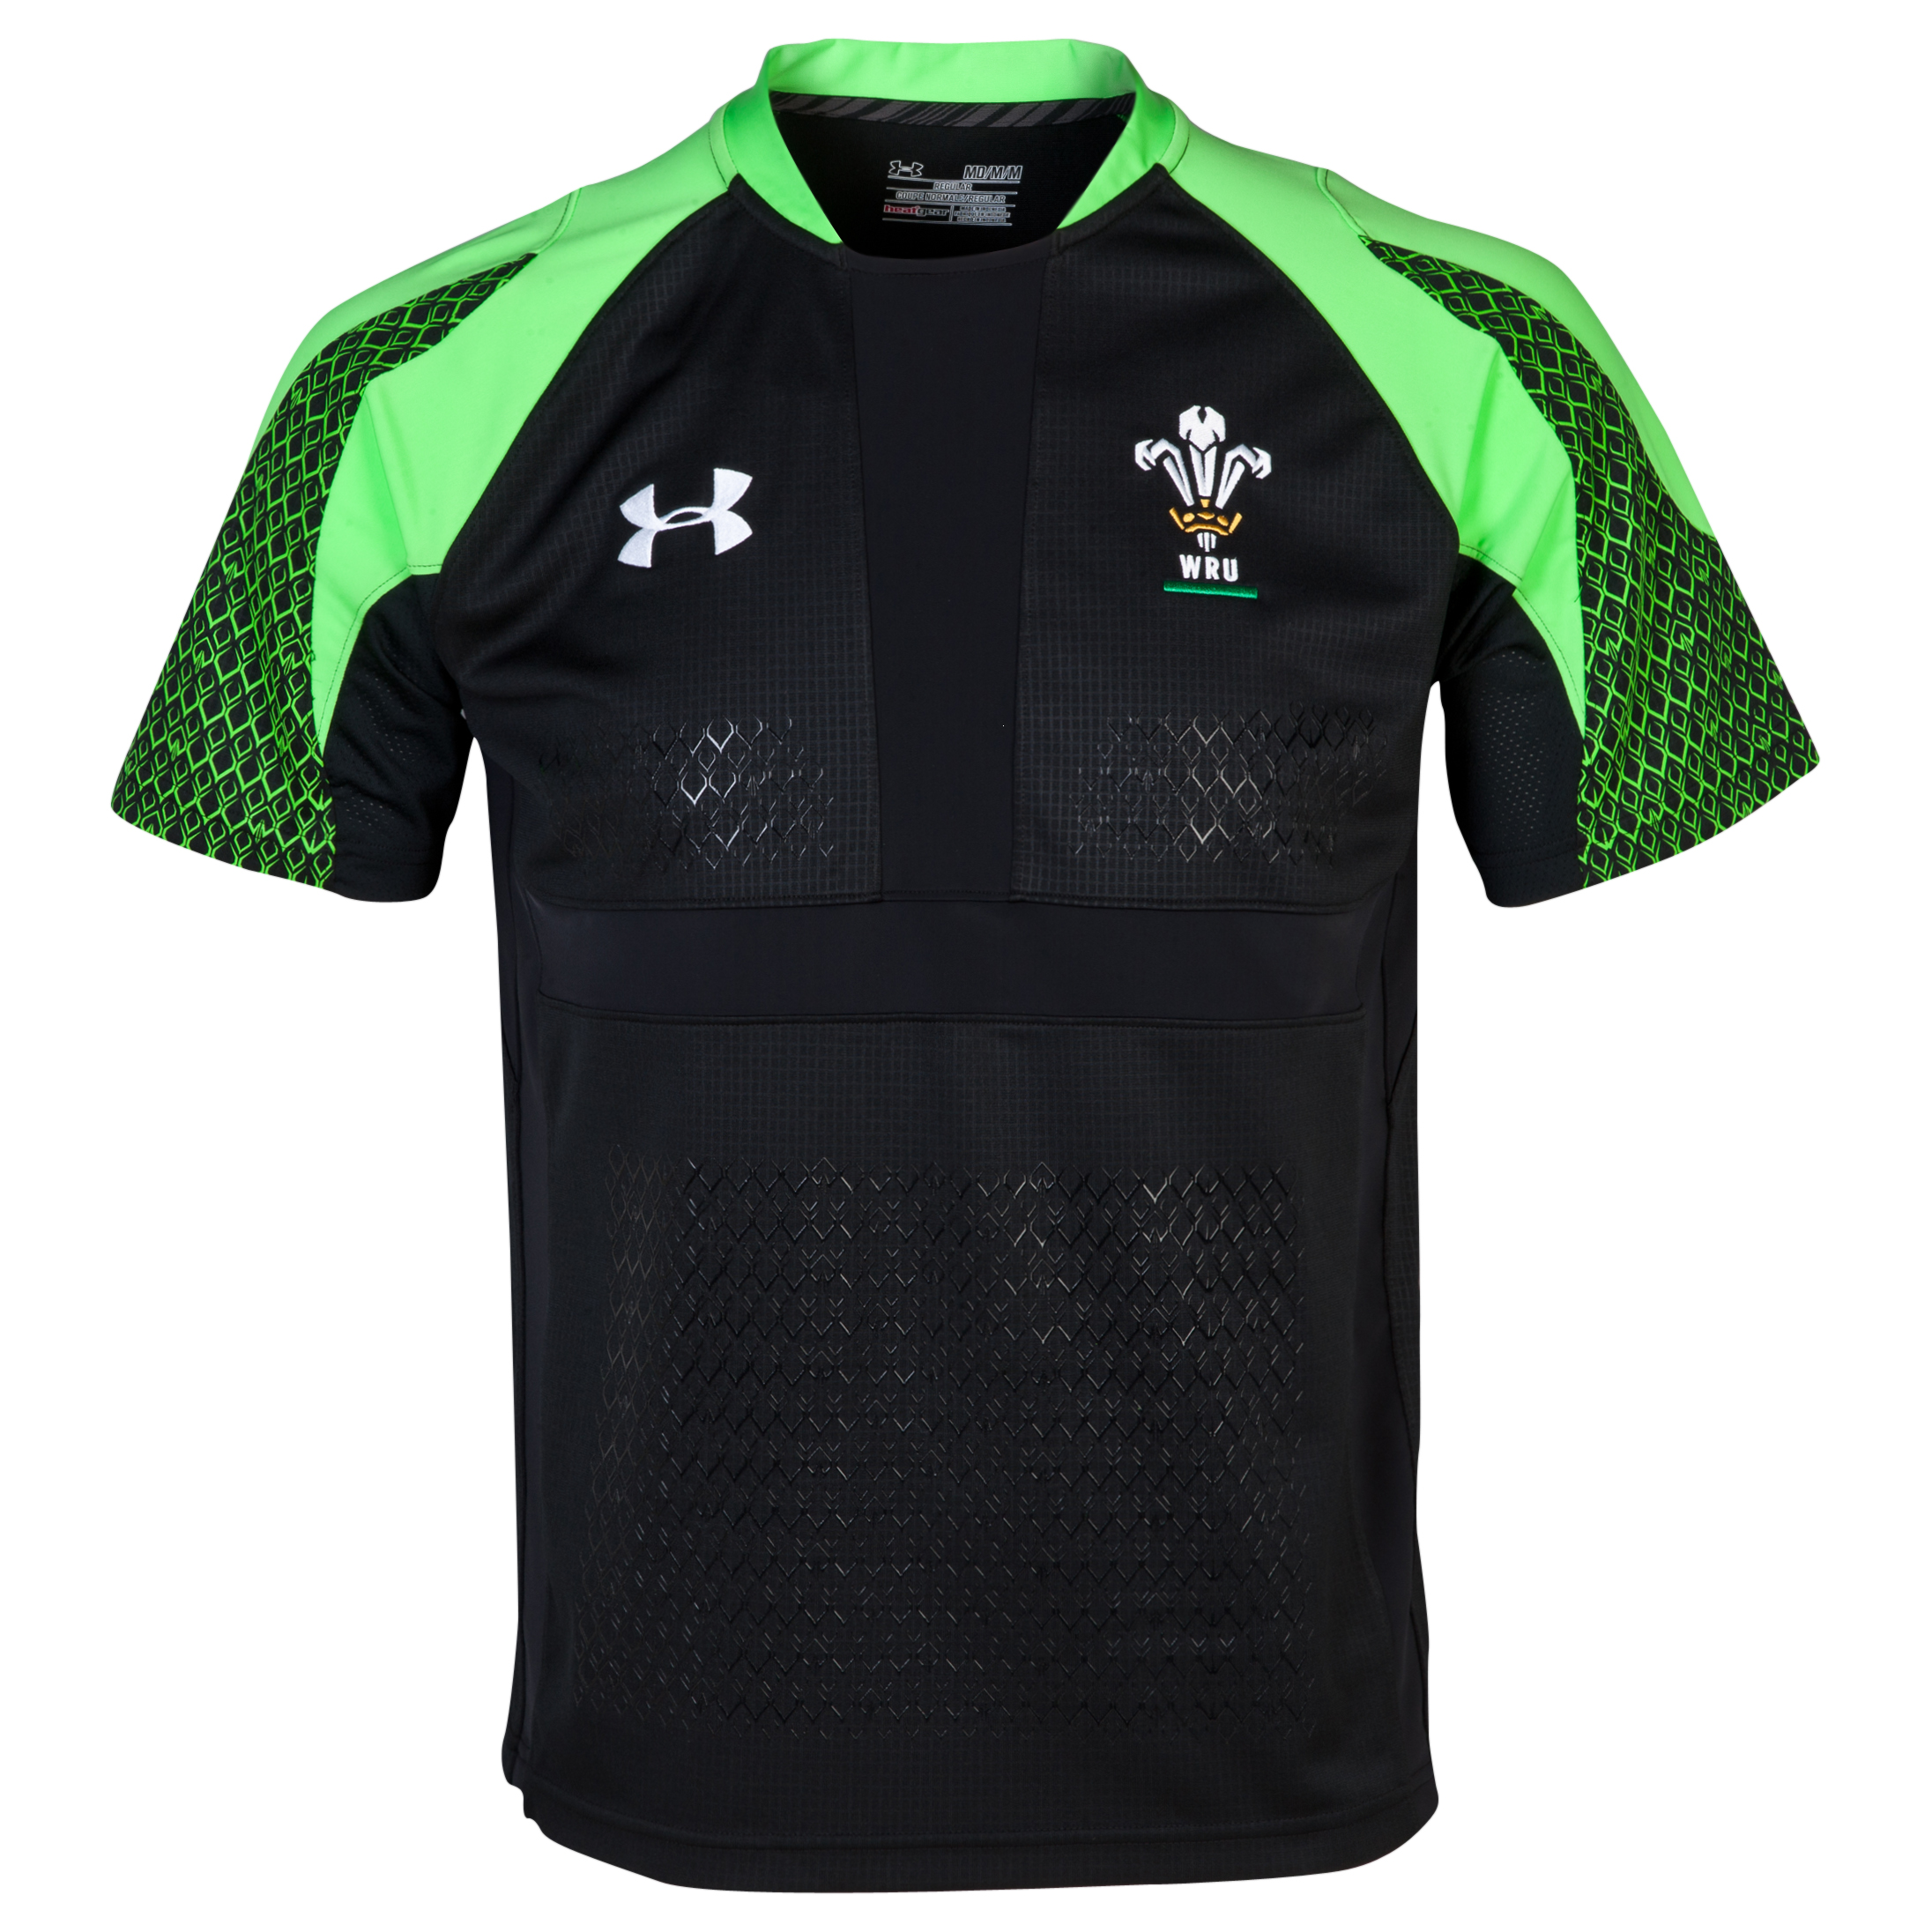 Wales Rugby Union Sevens Shirt 2013/15 - Black